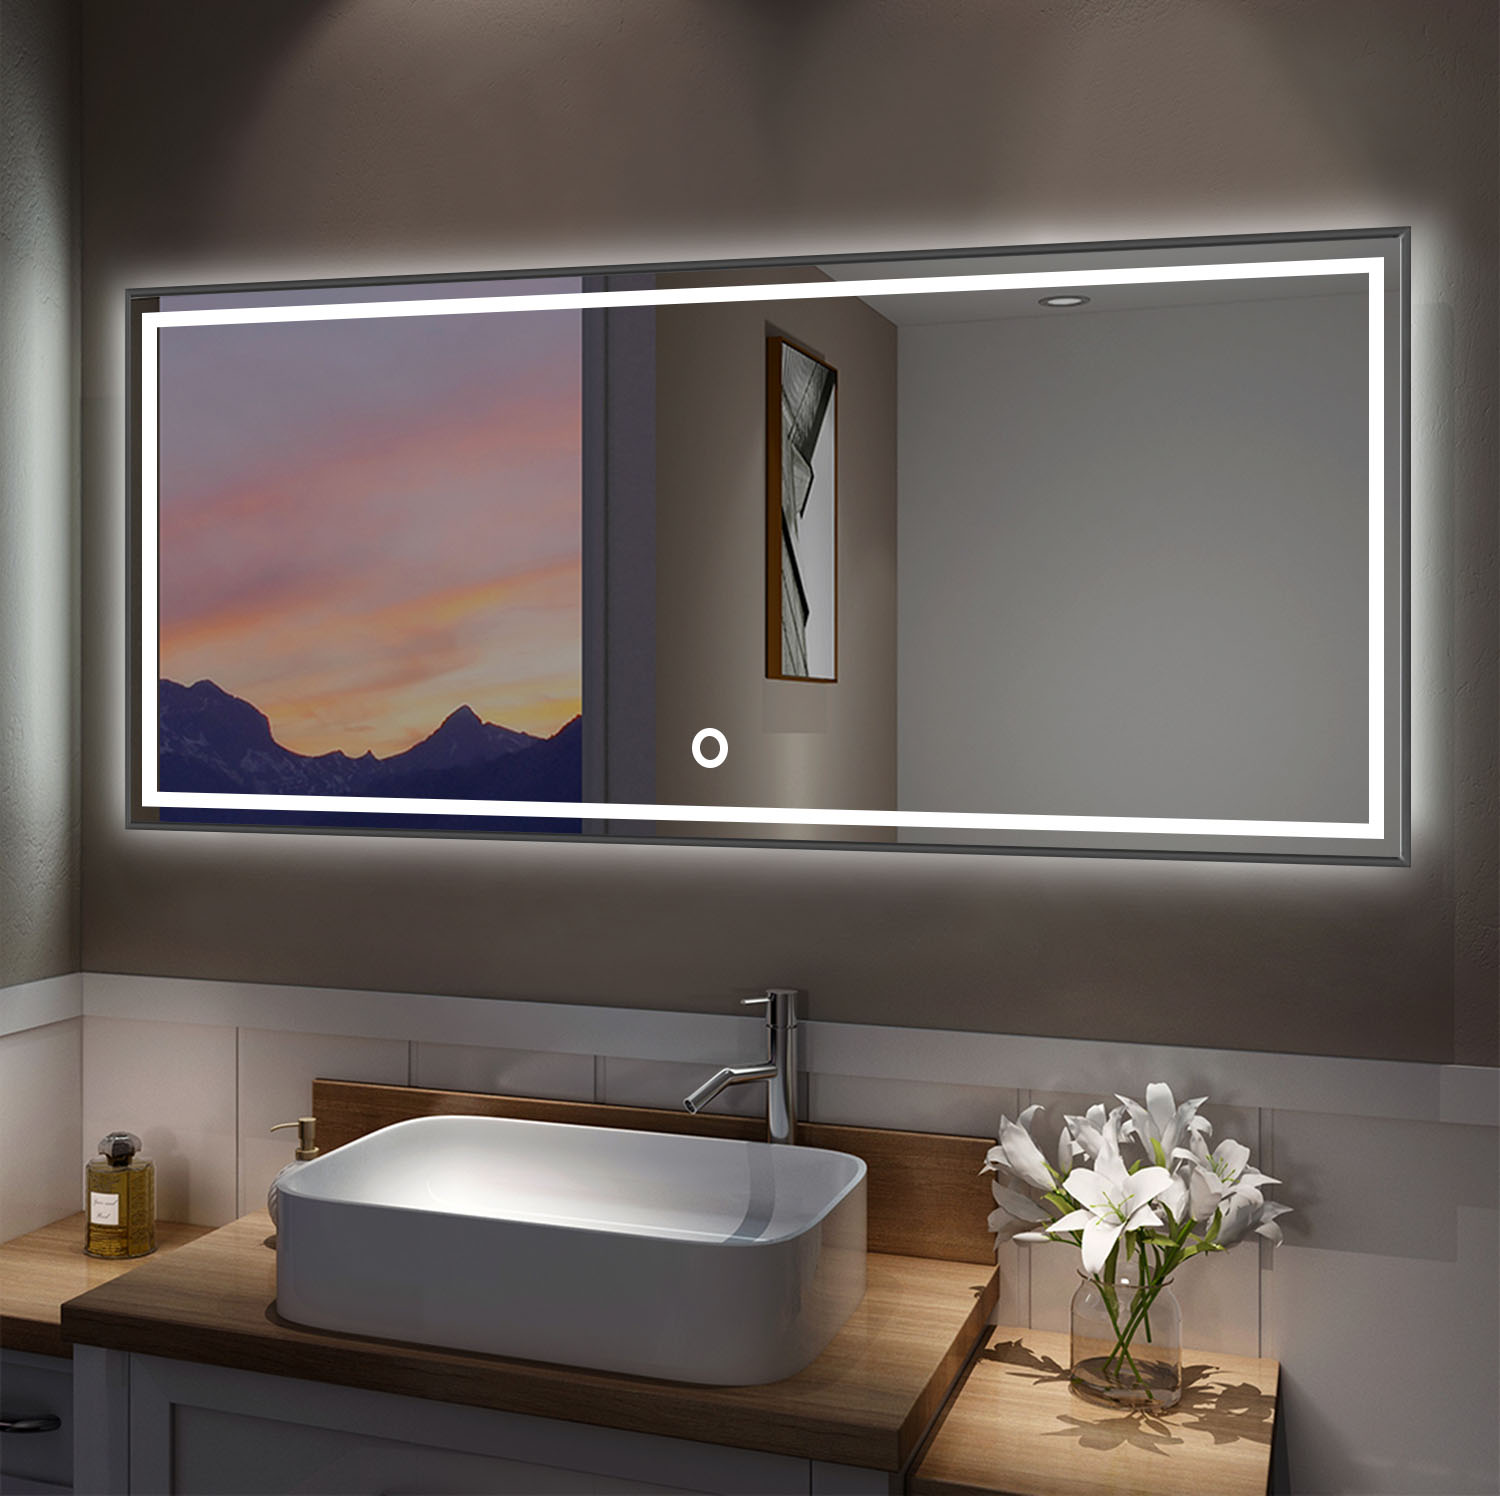 Led Mirror Full Length Mirror Wall Mounted Mirror Vanity Mirror With Lights For Bathroom Bedroom Living Room With Dimming Touch Switch Waterproof Black 47 X 20 Walmart Com Walmart Com